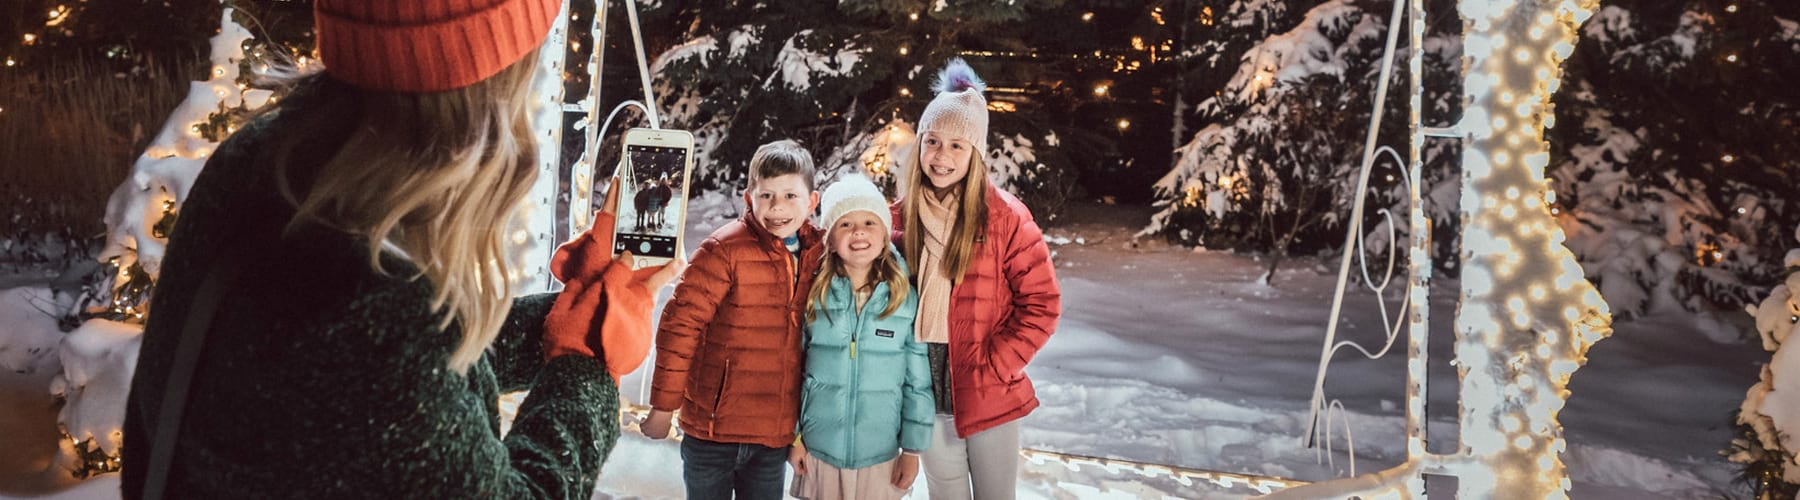 Family Photo Outside by Holiday Lights